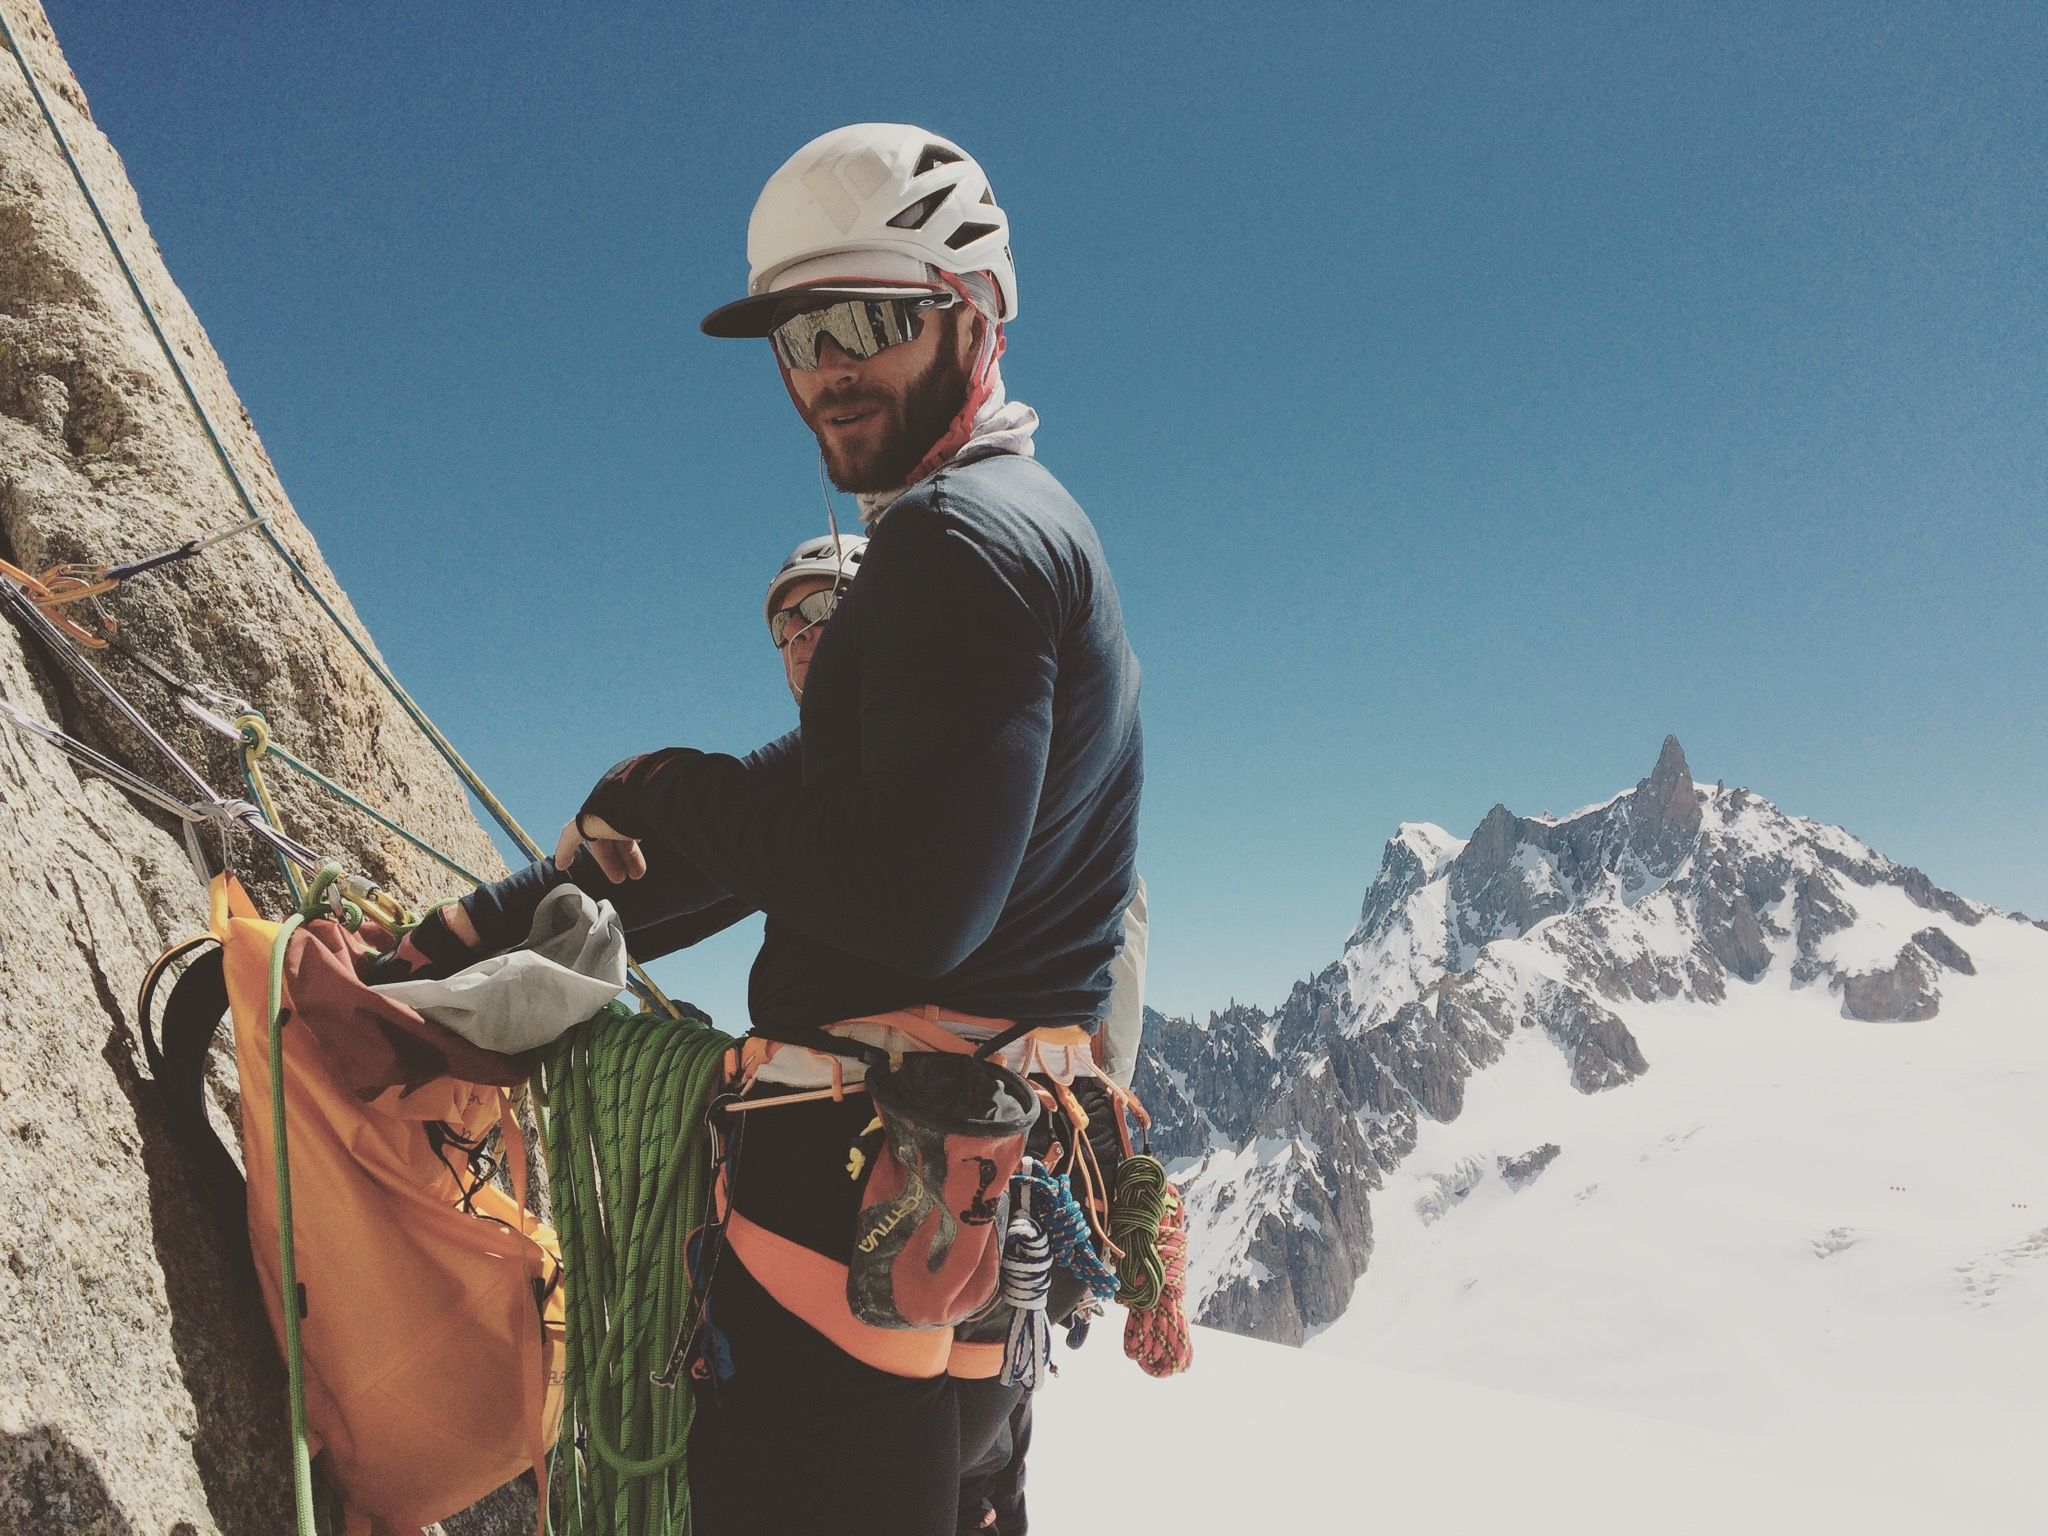 Climbing with a gear pieces of advice from Adventure Fitness with Mark Milburn